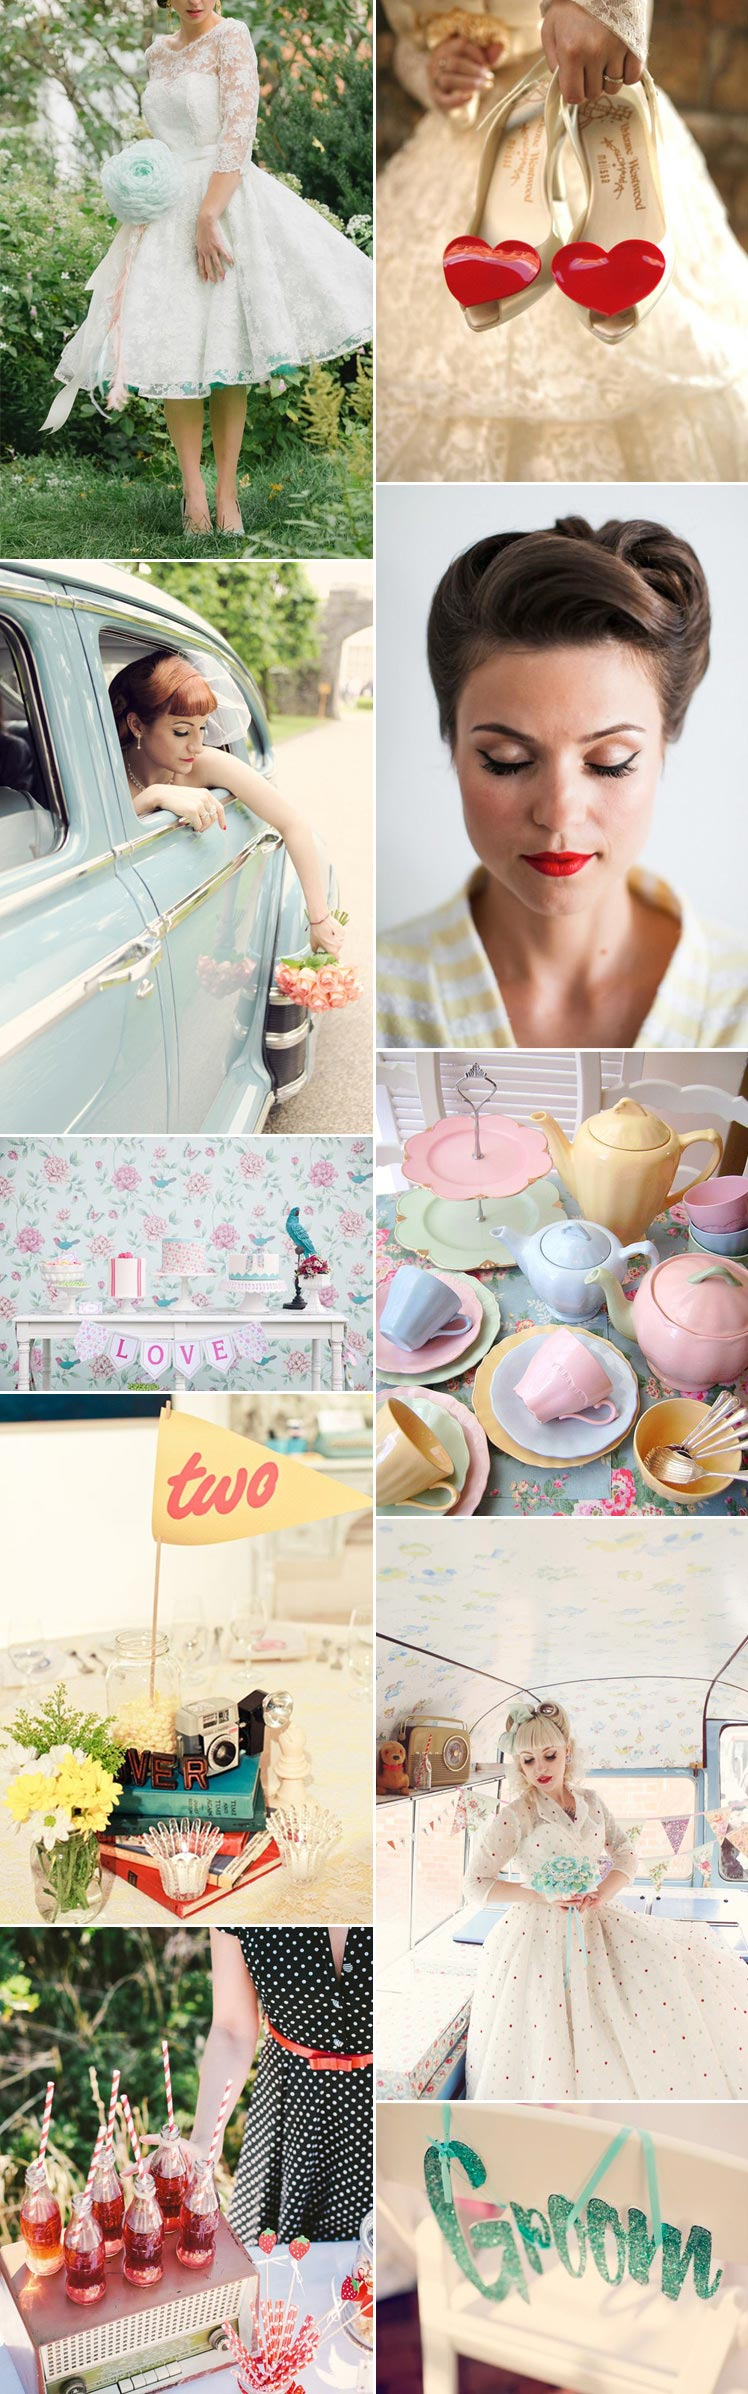 Pastel 1950s retro wedding ideas